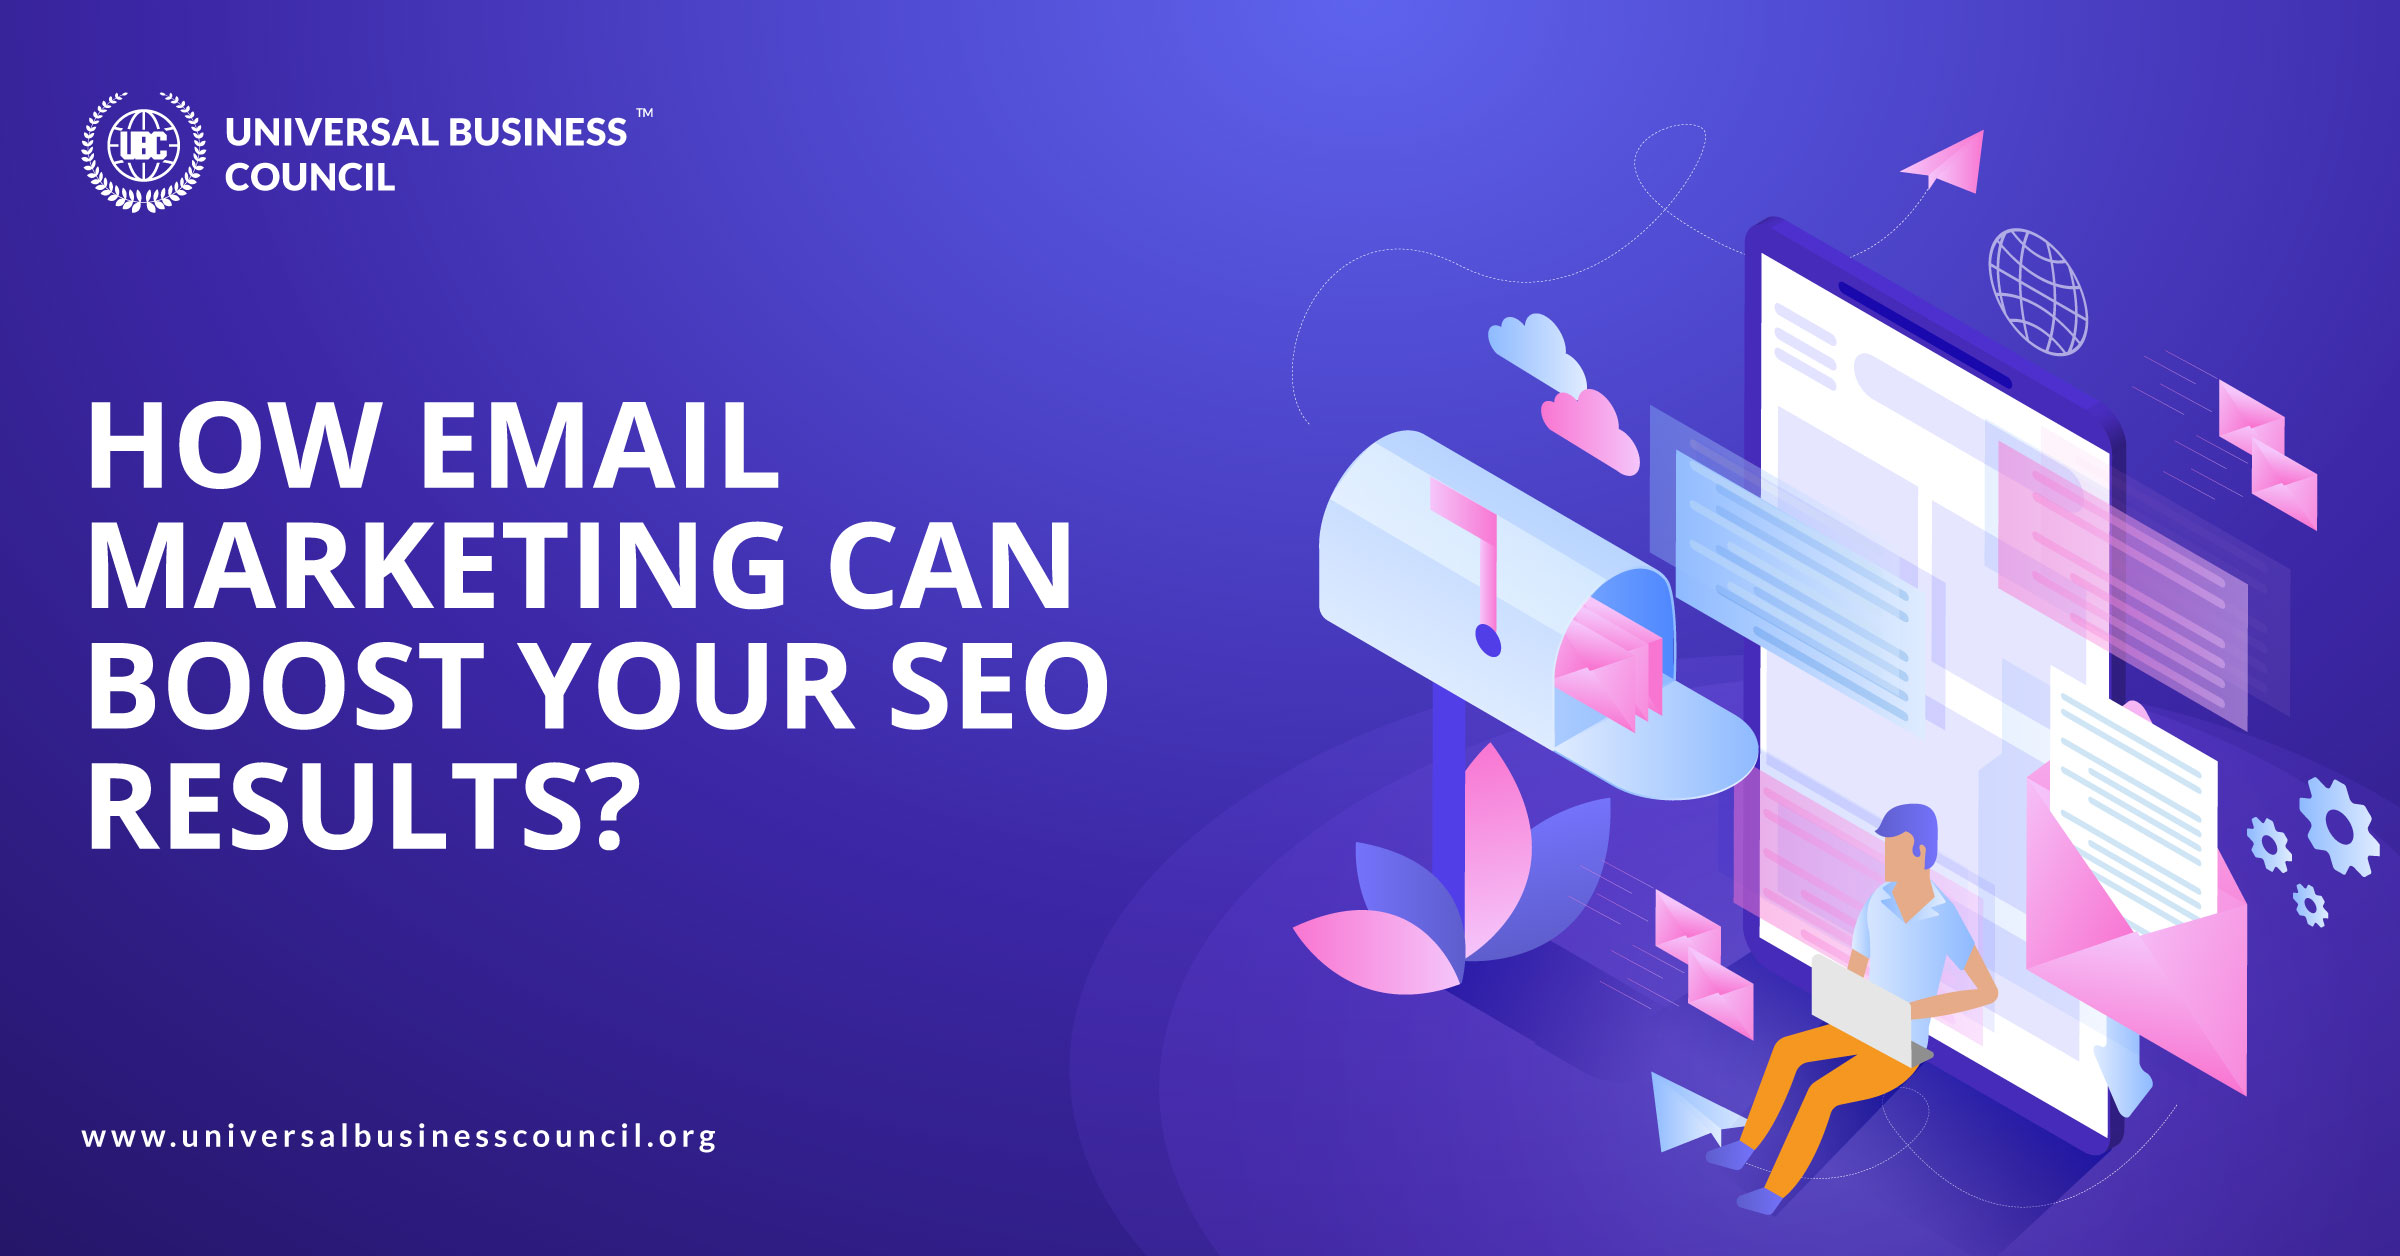 How-Email-Marketing-can-boost-Your-SEO-Results